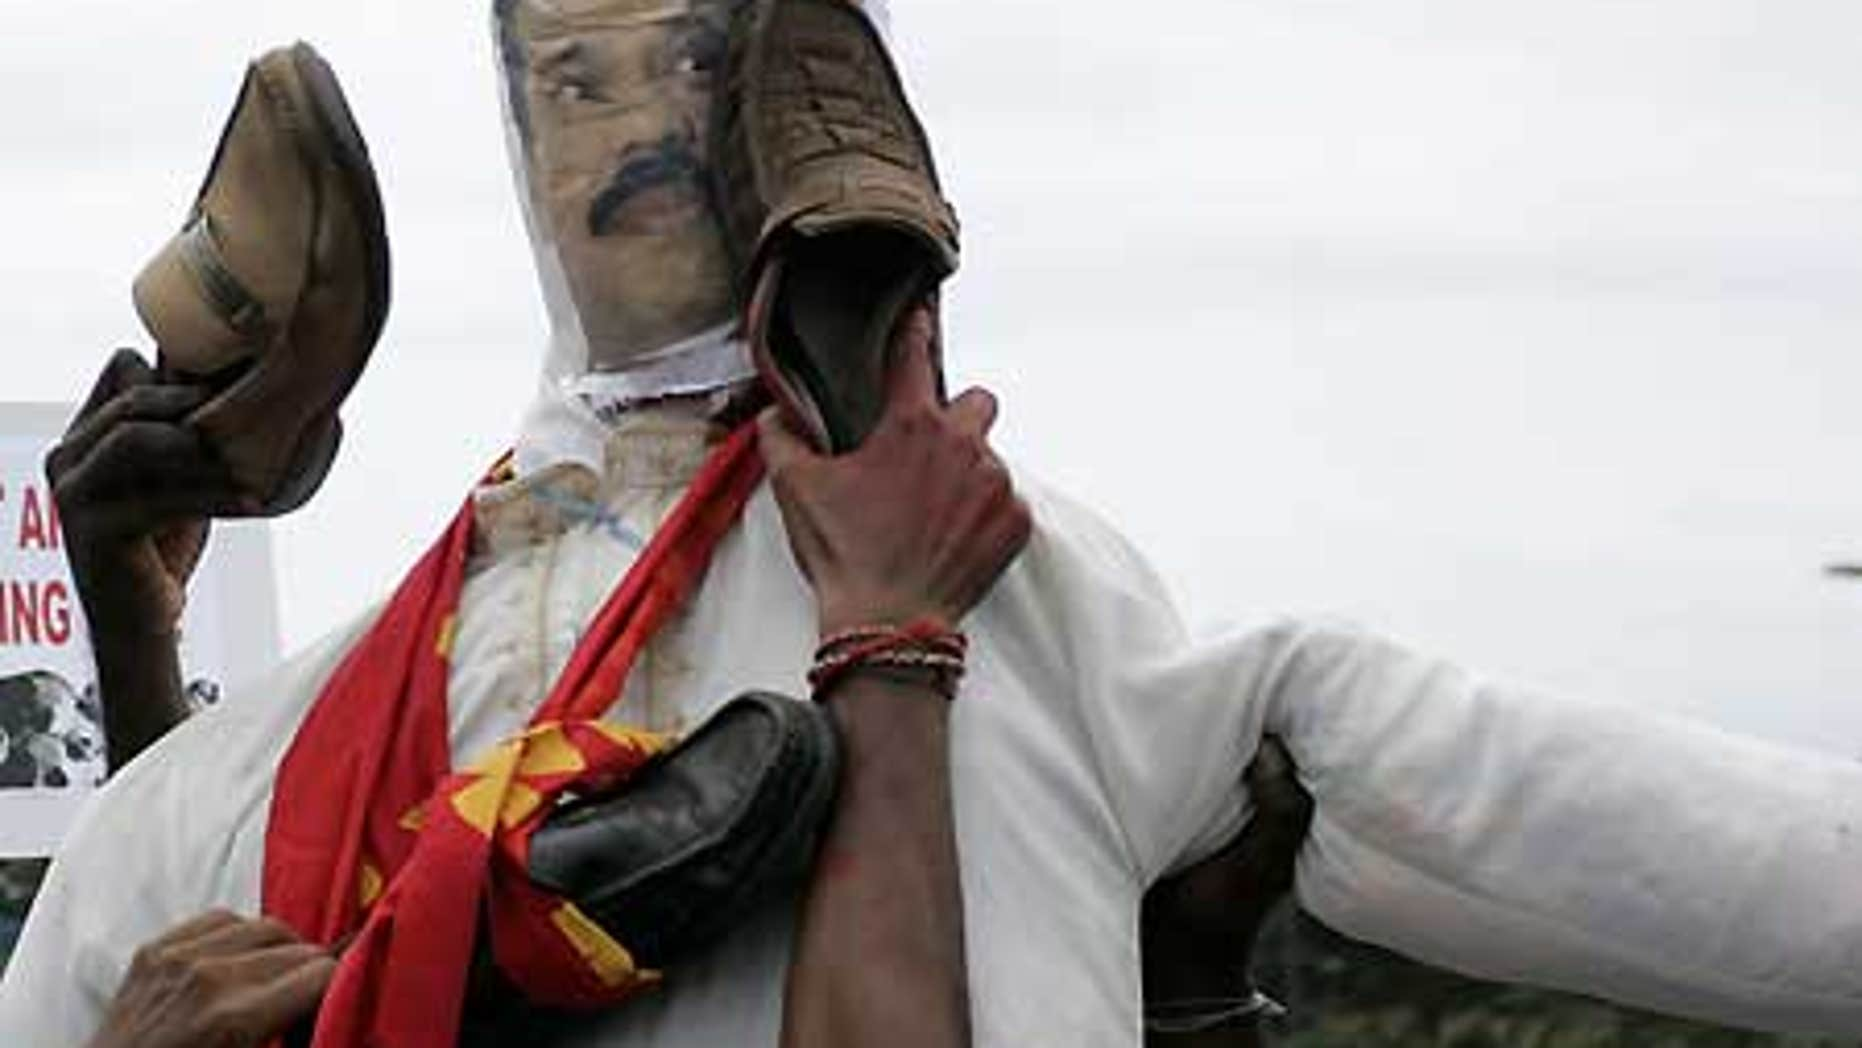 April 21: Malaysian Indian protesters of Tamil ethnicity beat an effigy of Sri Lankan President Mahinda Rajapaksa with shoes.